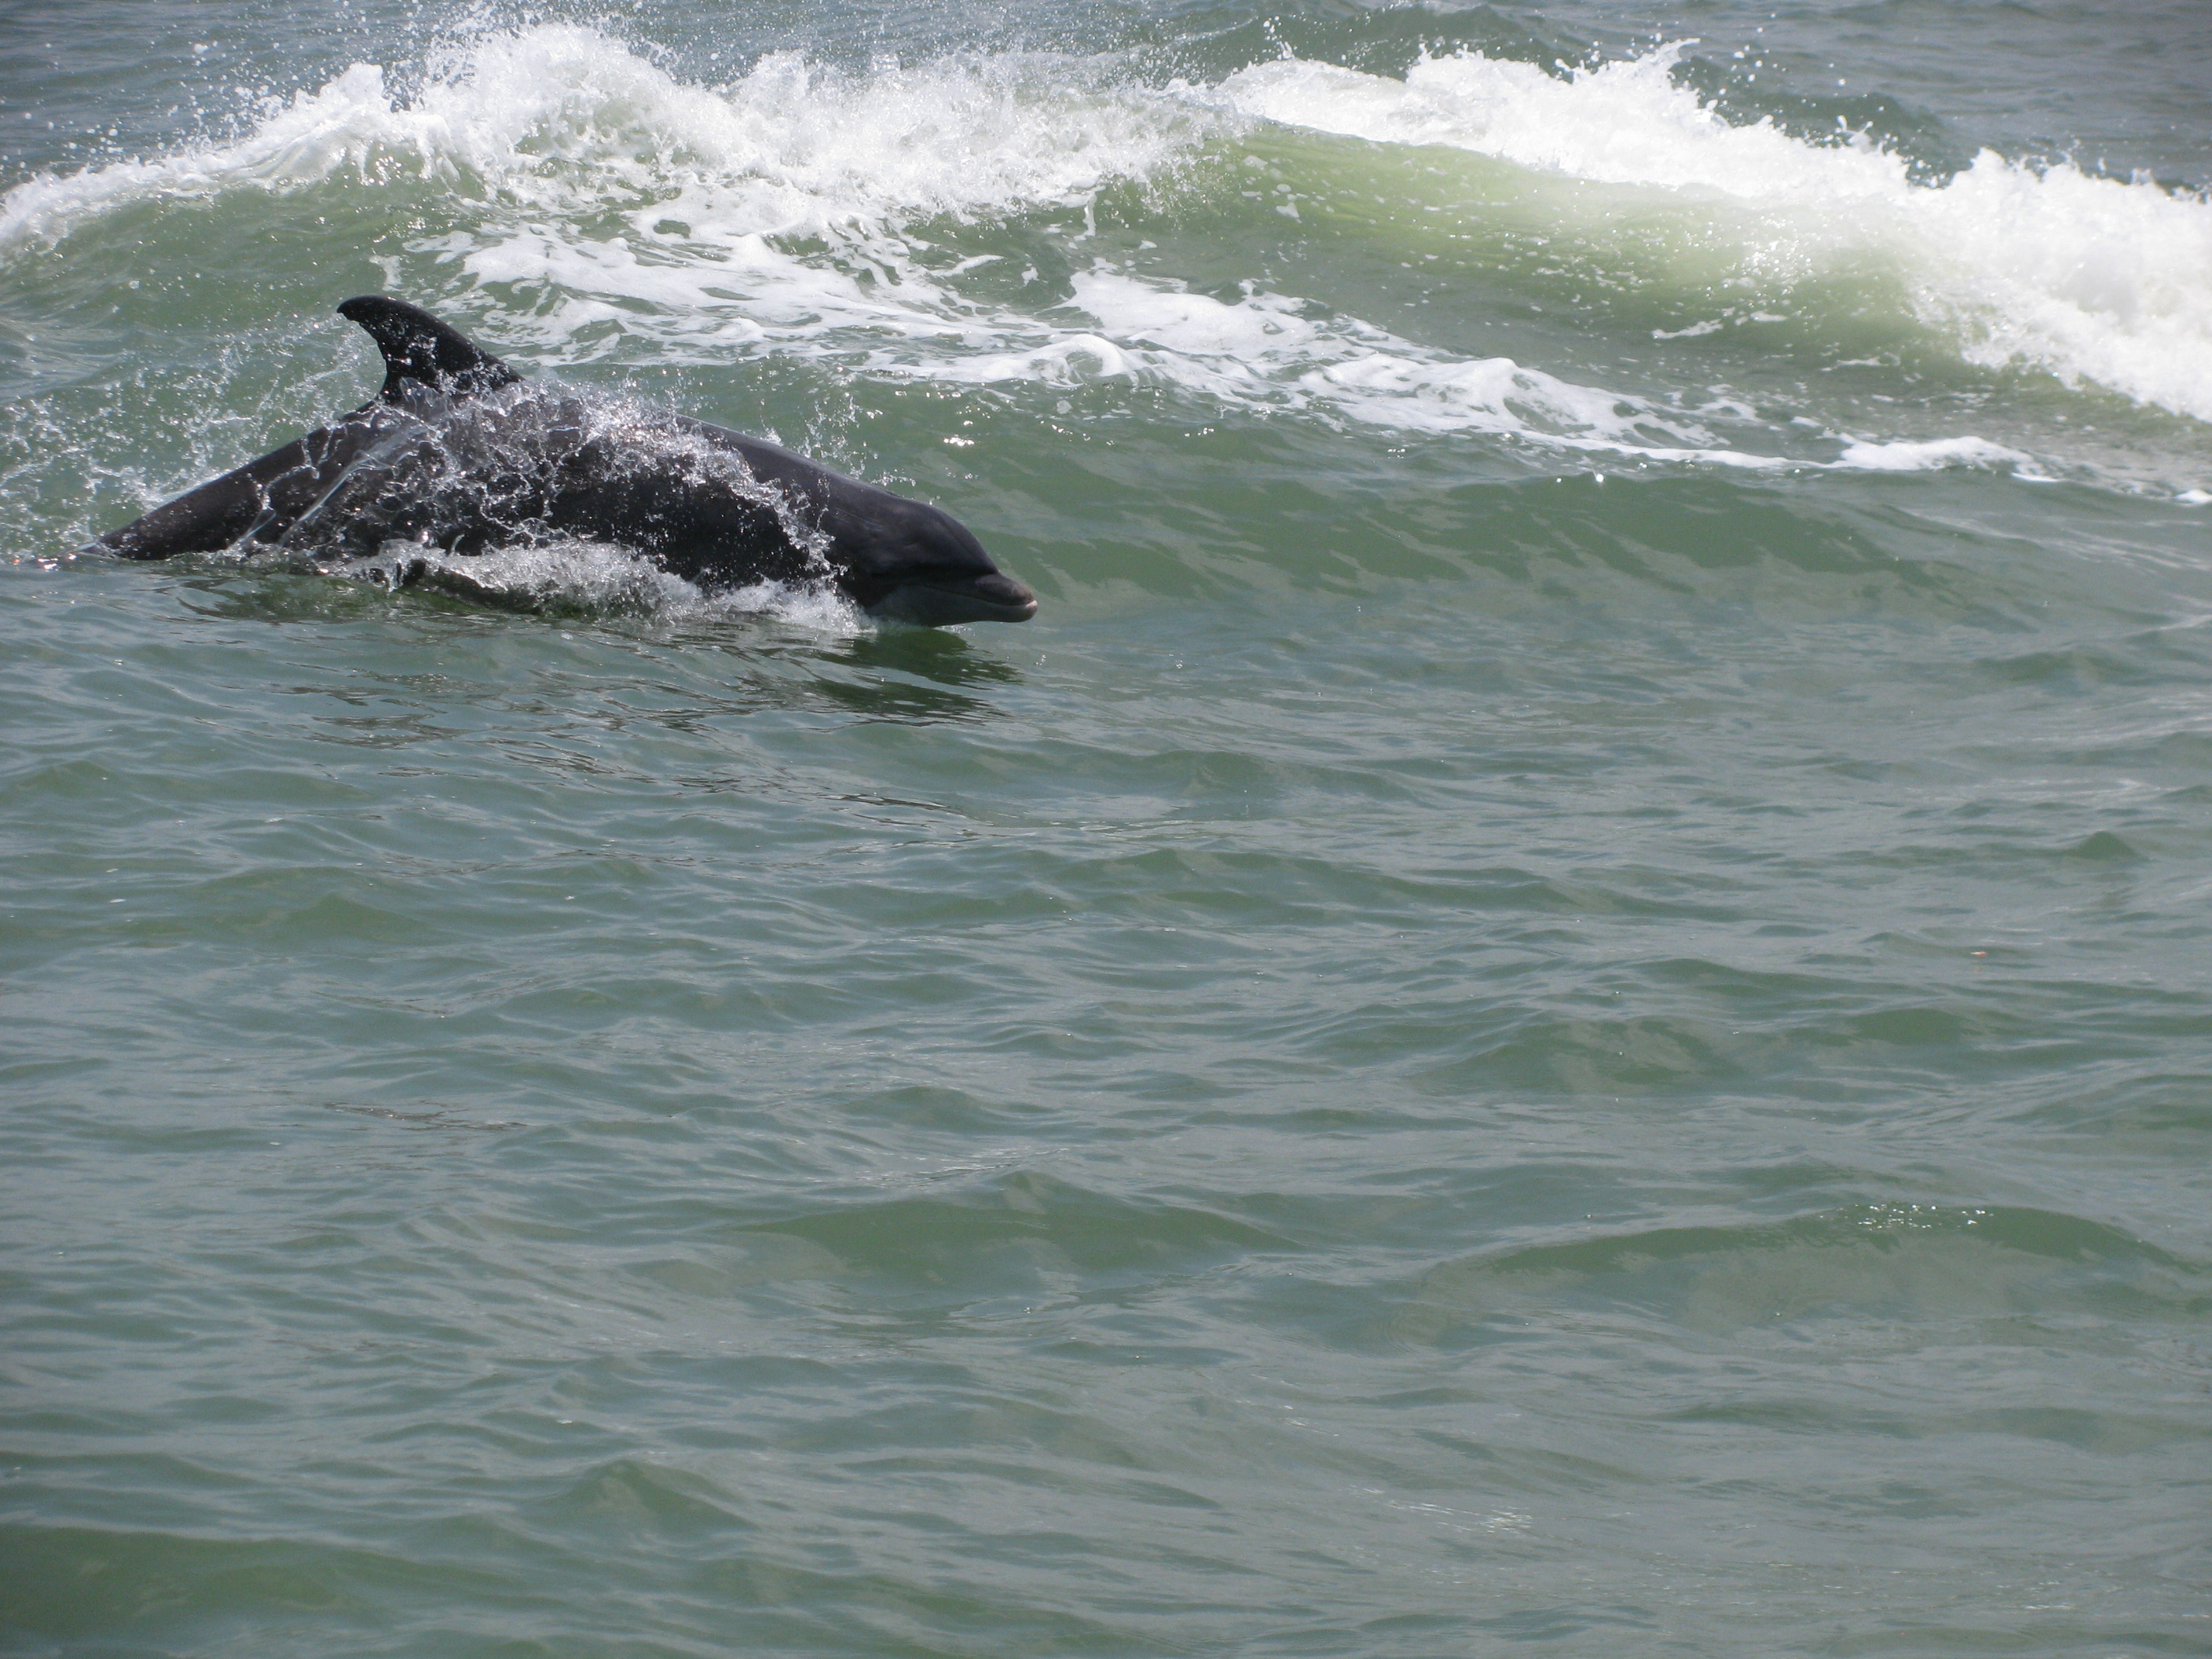 Beached dolphins - photo#47